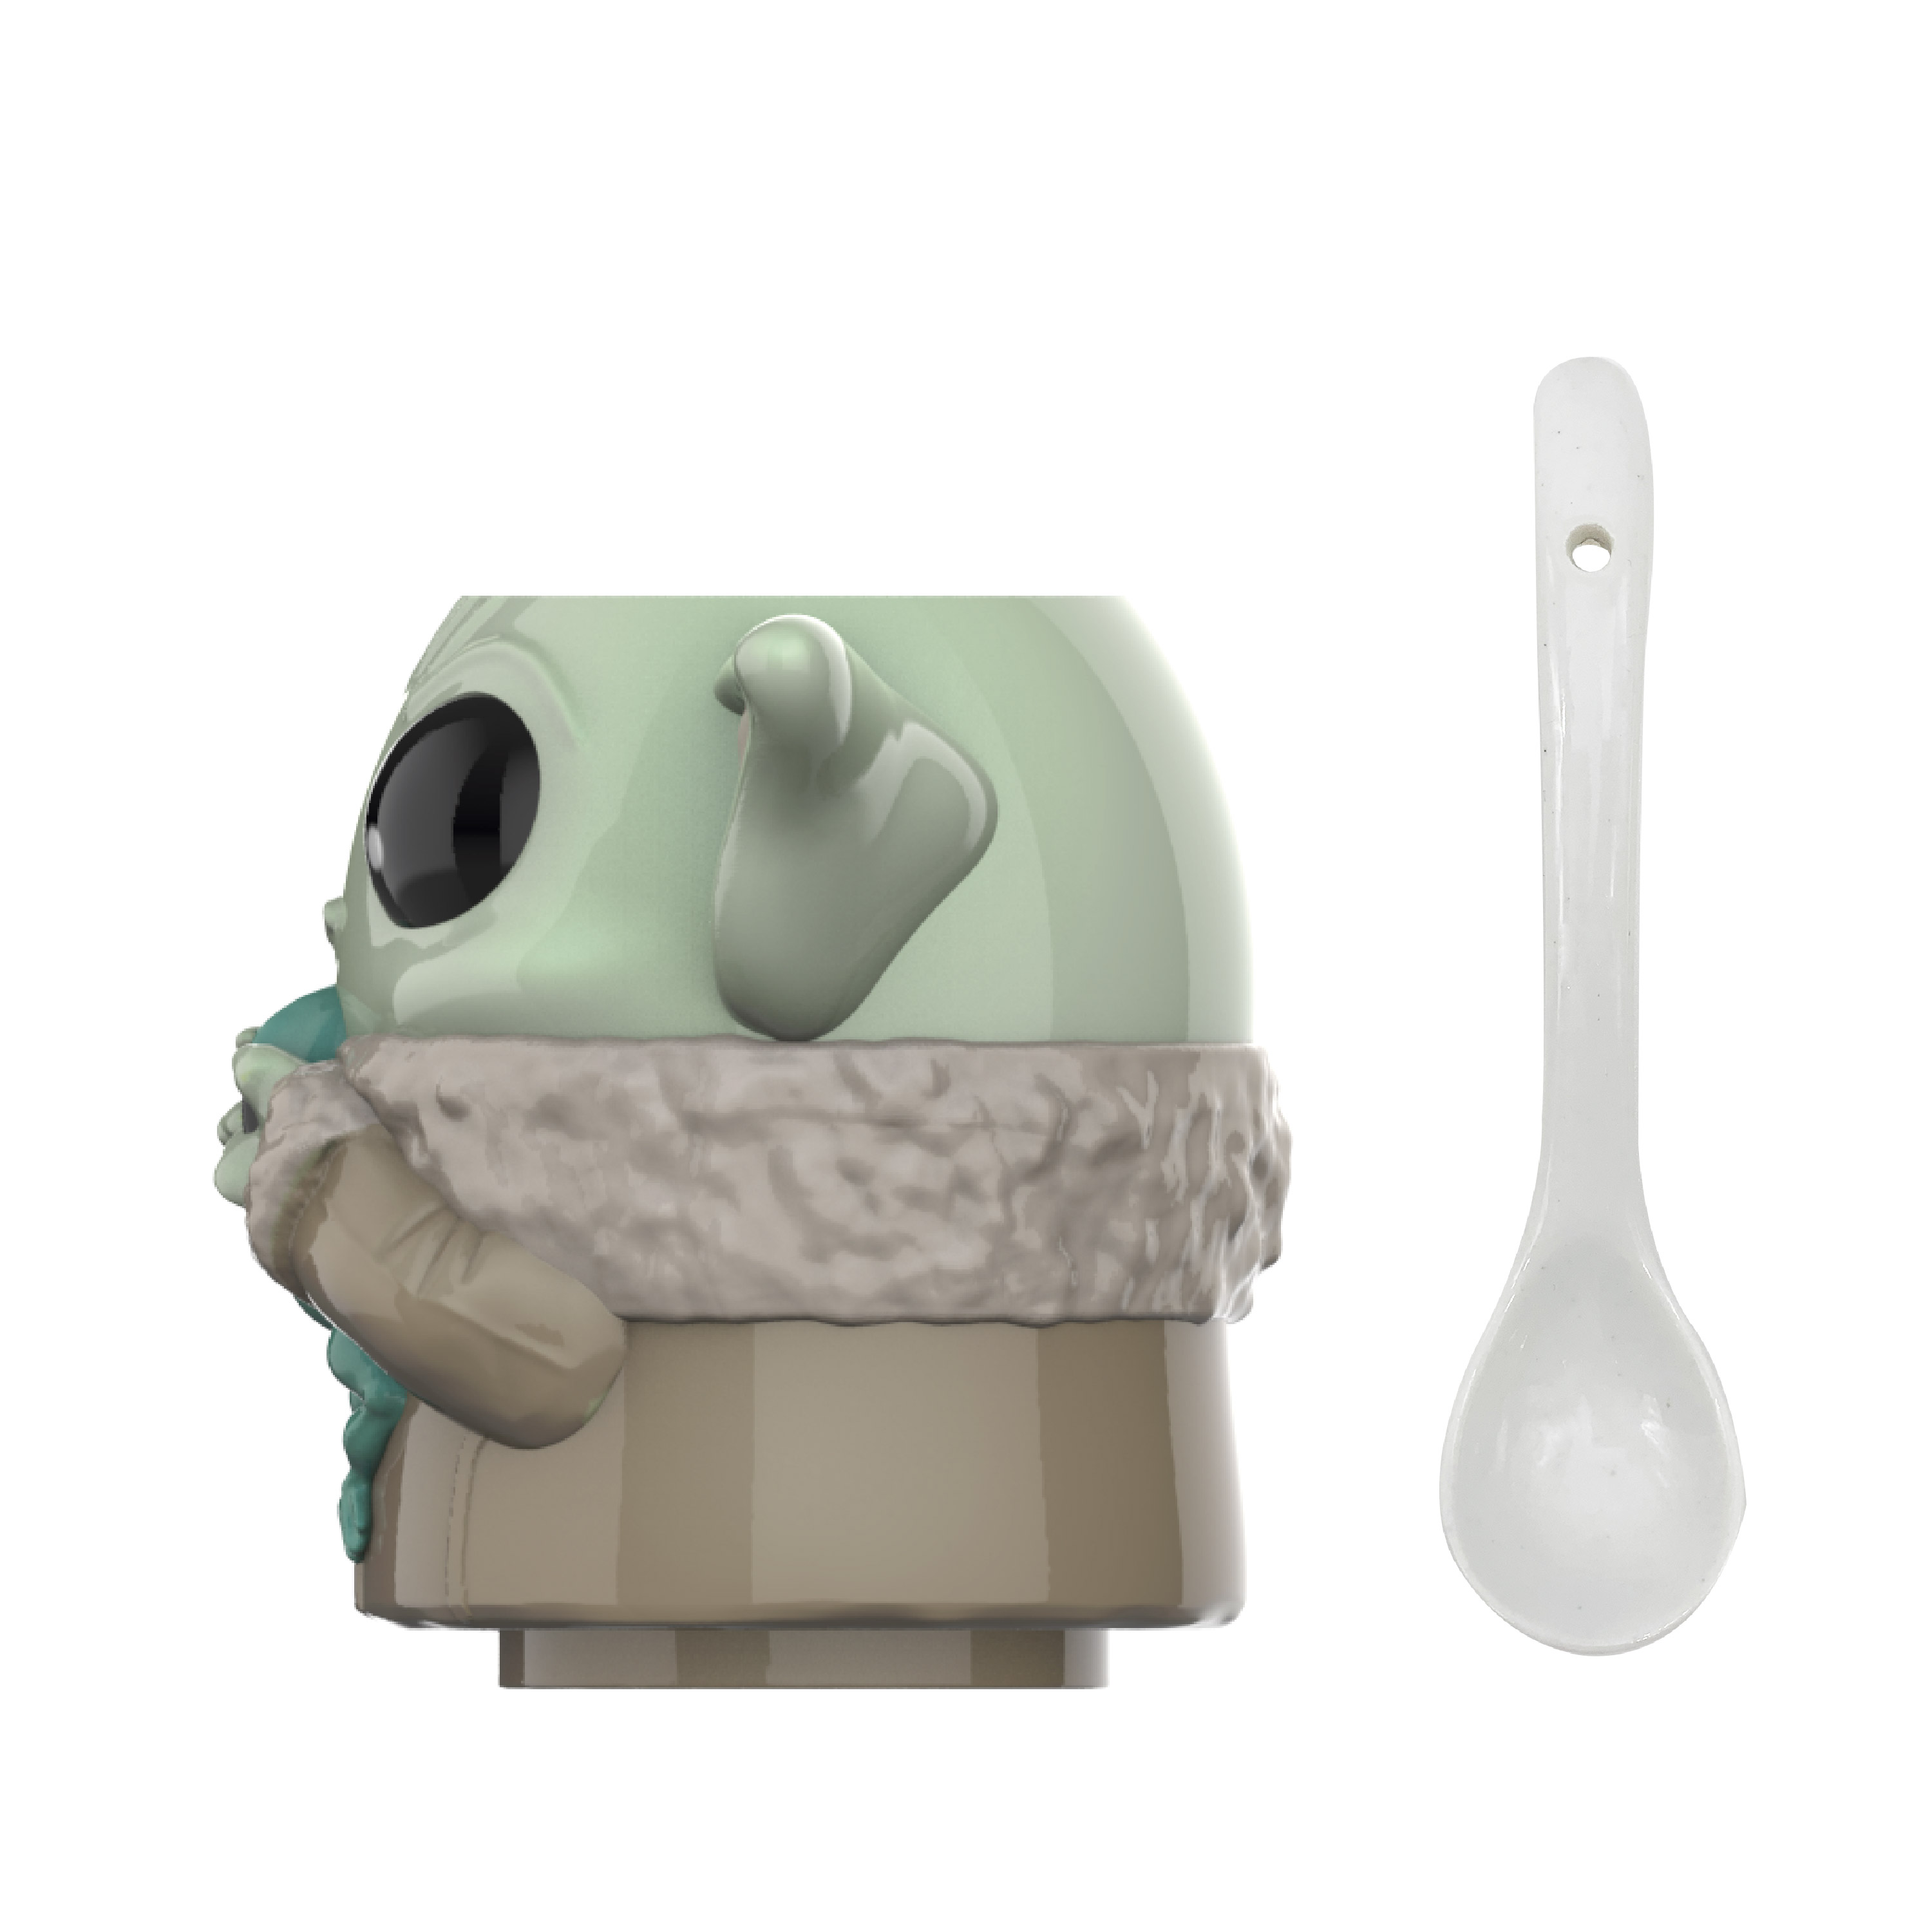 Star Wars: The Mandalorian Ceramic Coffee Mug and Spoon, The Child, 2-piece set slideshow image 8